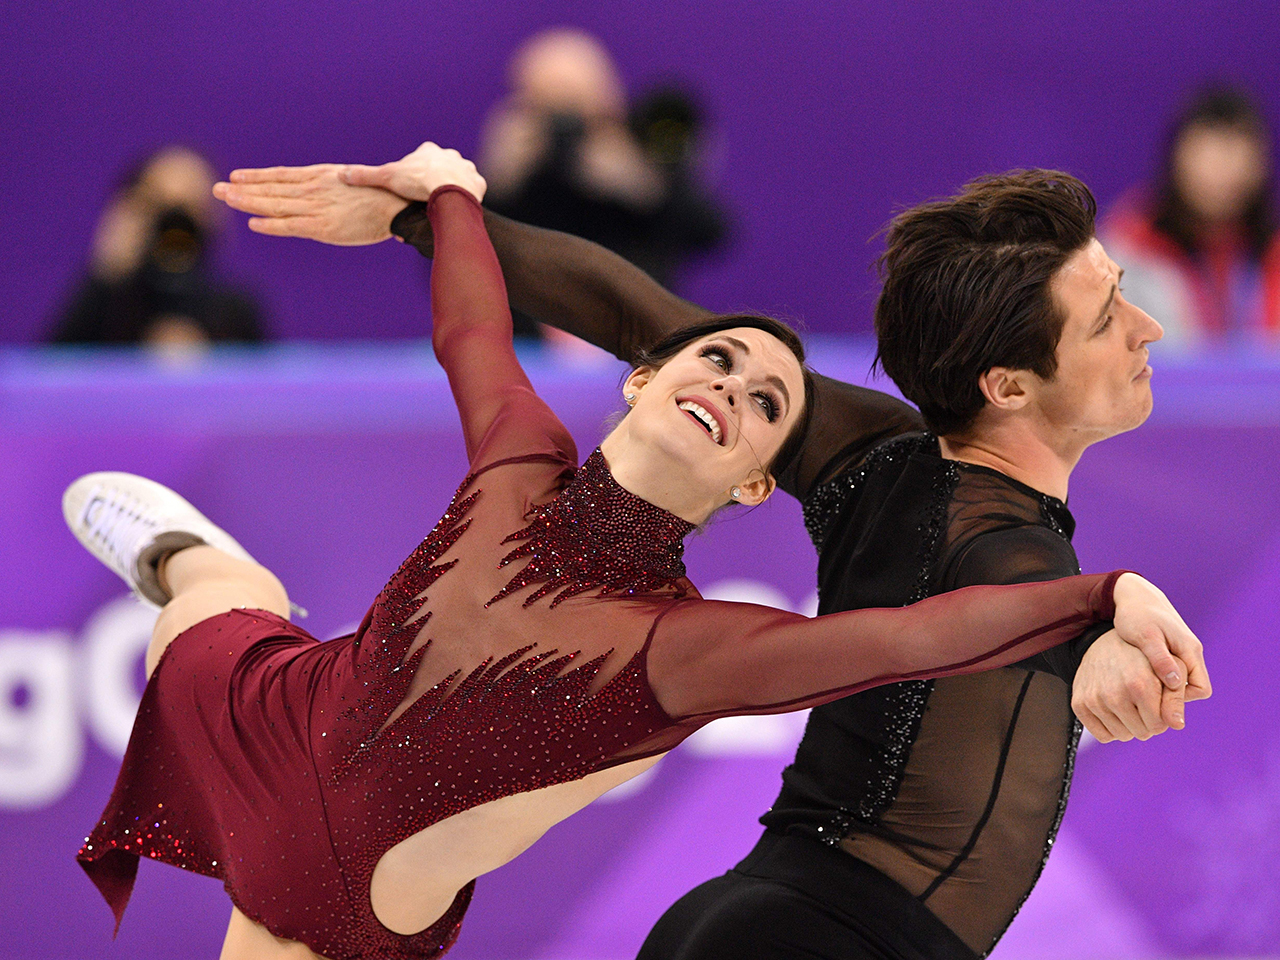 women of the year 2018: Tessa Virtue and Scott Moir compete in the ice dance free dance of the figure skating event during the Pyeongchang 2018 Winter Olympic Games